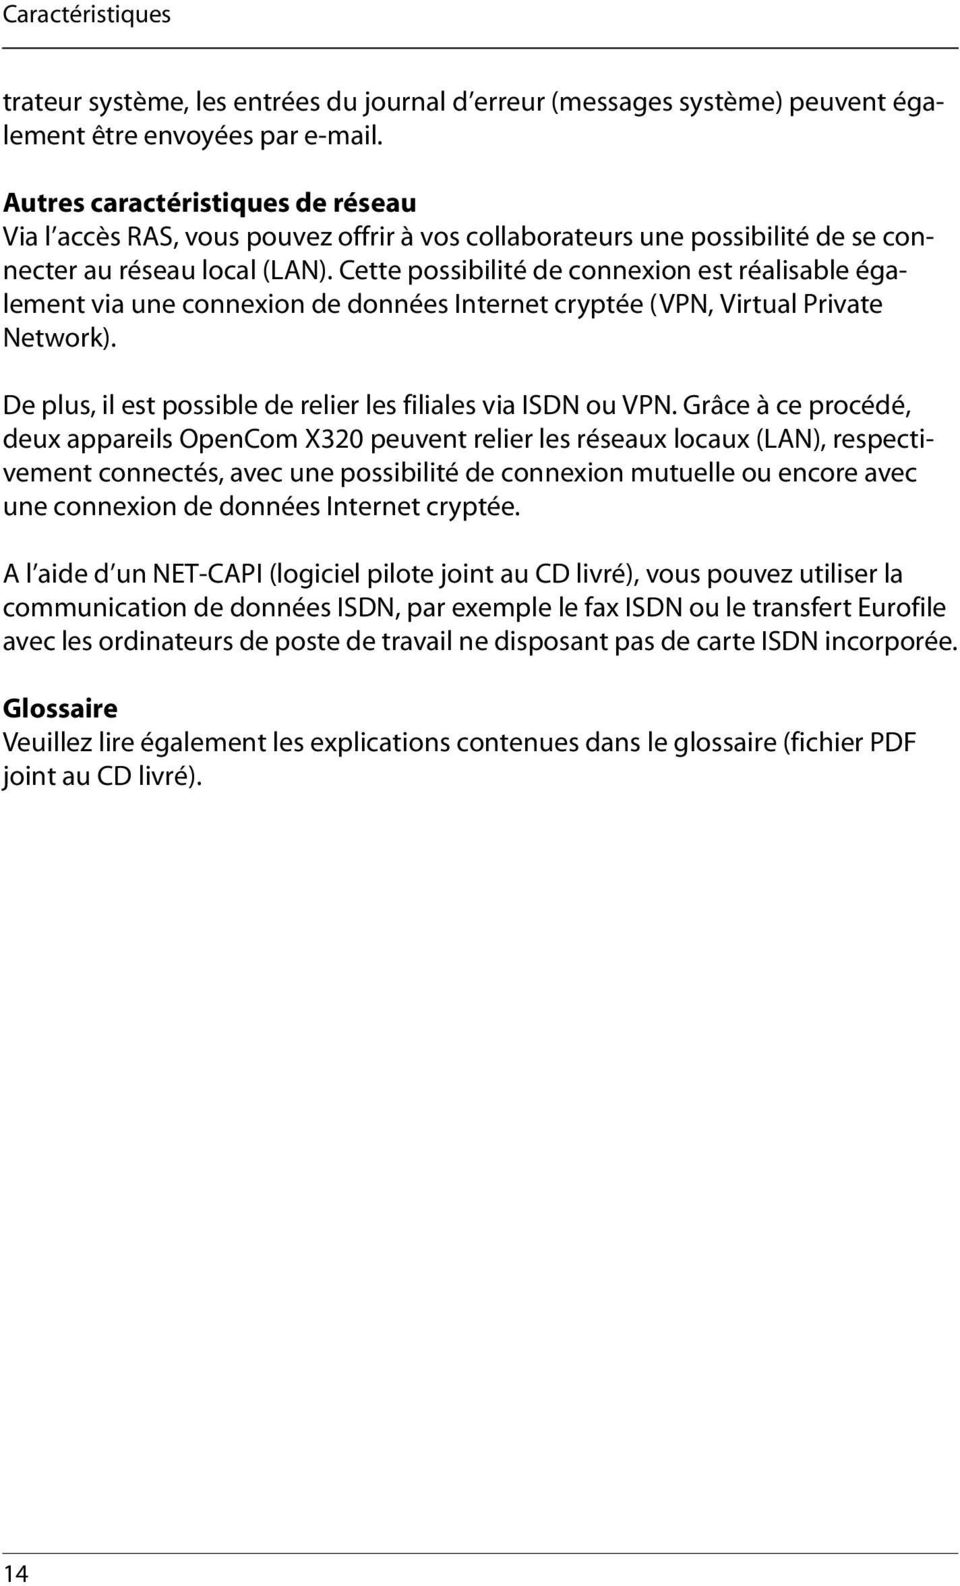 Cette possibilité de connexion est réalisable également via une connexion de données Internet cryptée (VPN, Virtual Private Network). De plus, il est possible de relier les filiales via ISDN ou VPN.